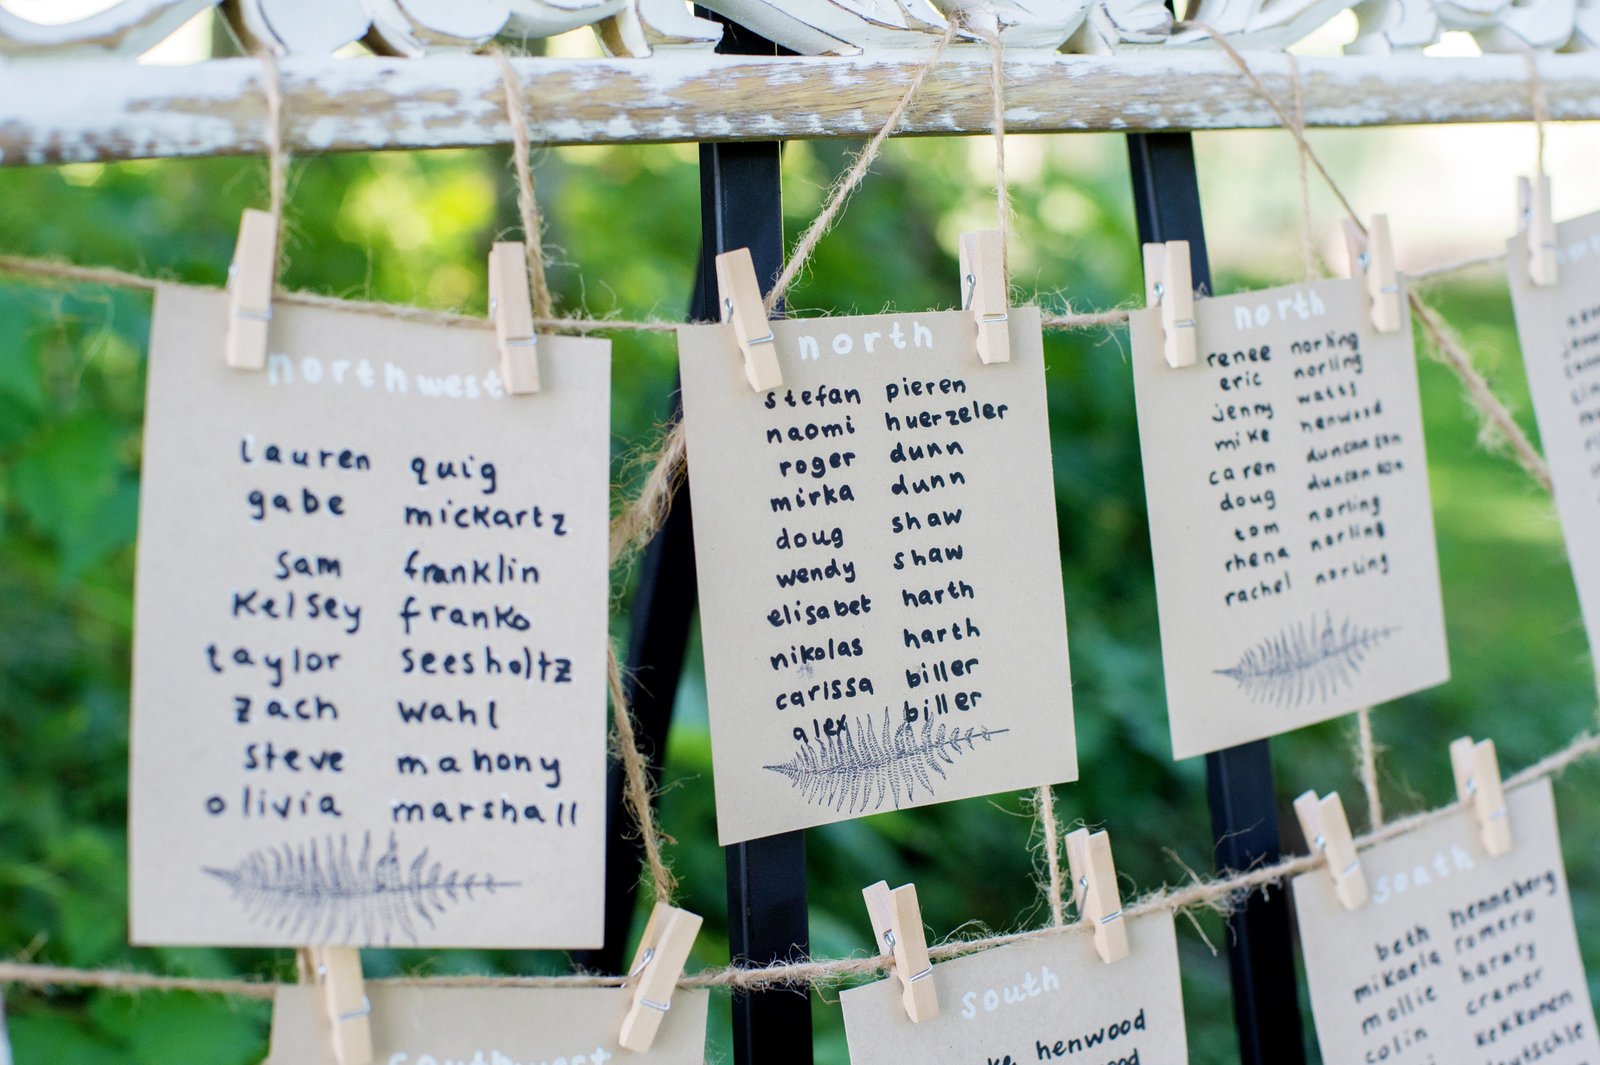 wedding reception dinner seating chart clipped to a frame with tiny clothespins